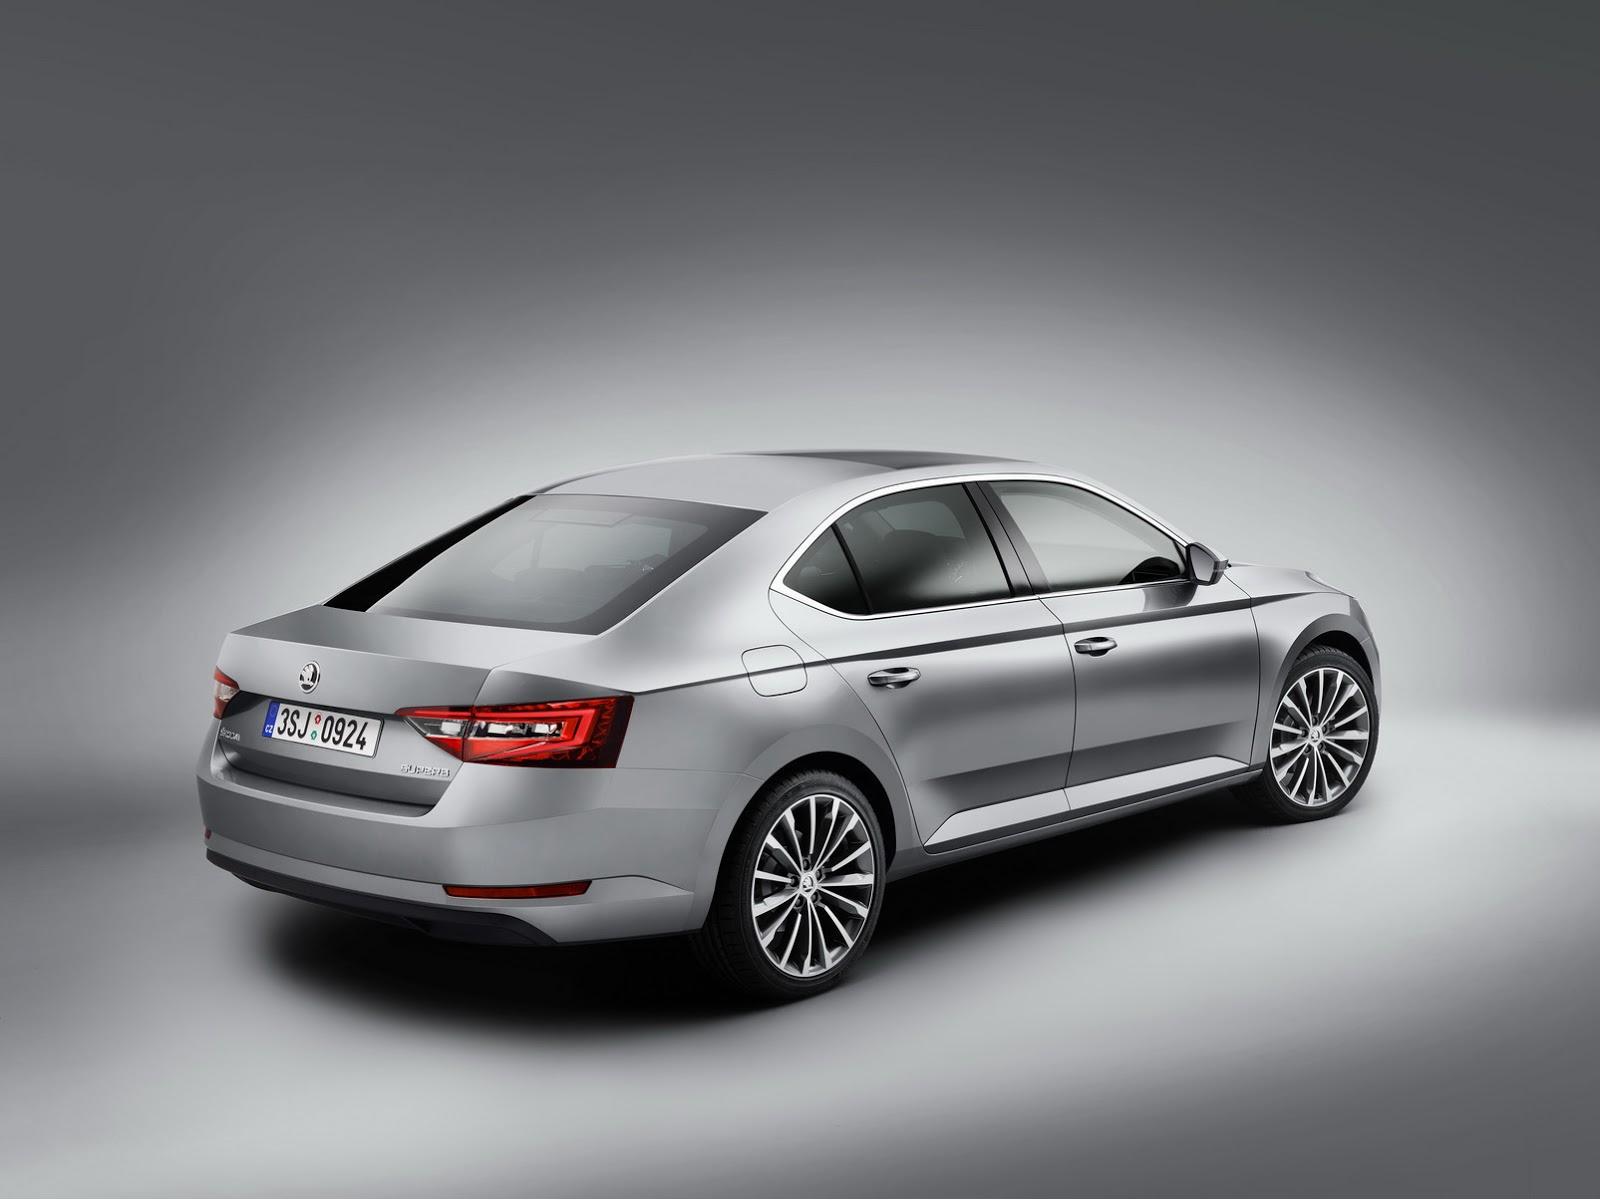 skoda 39 s all new superb officially breaks cover carscoops. Black Bedroom Furniture Sets. Home Design Ideas